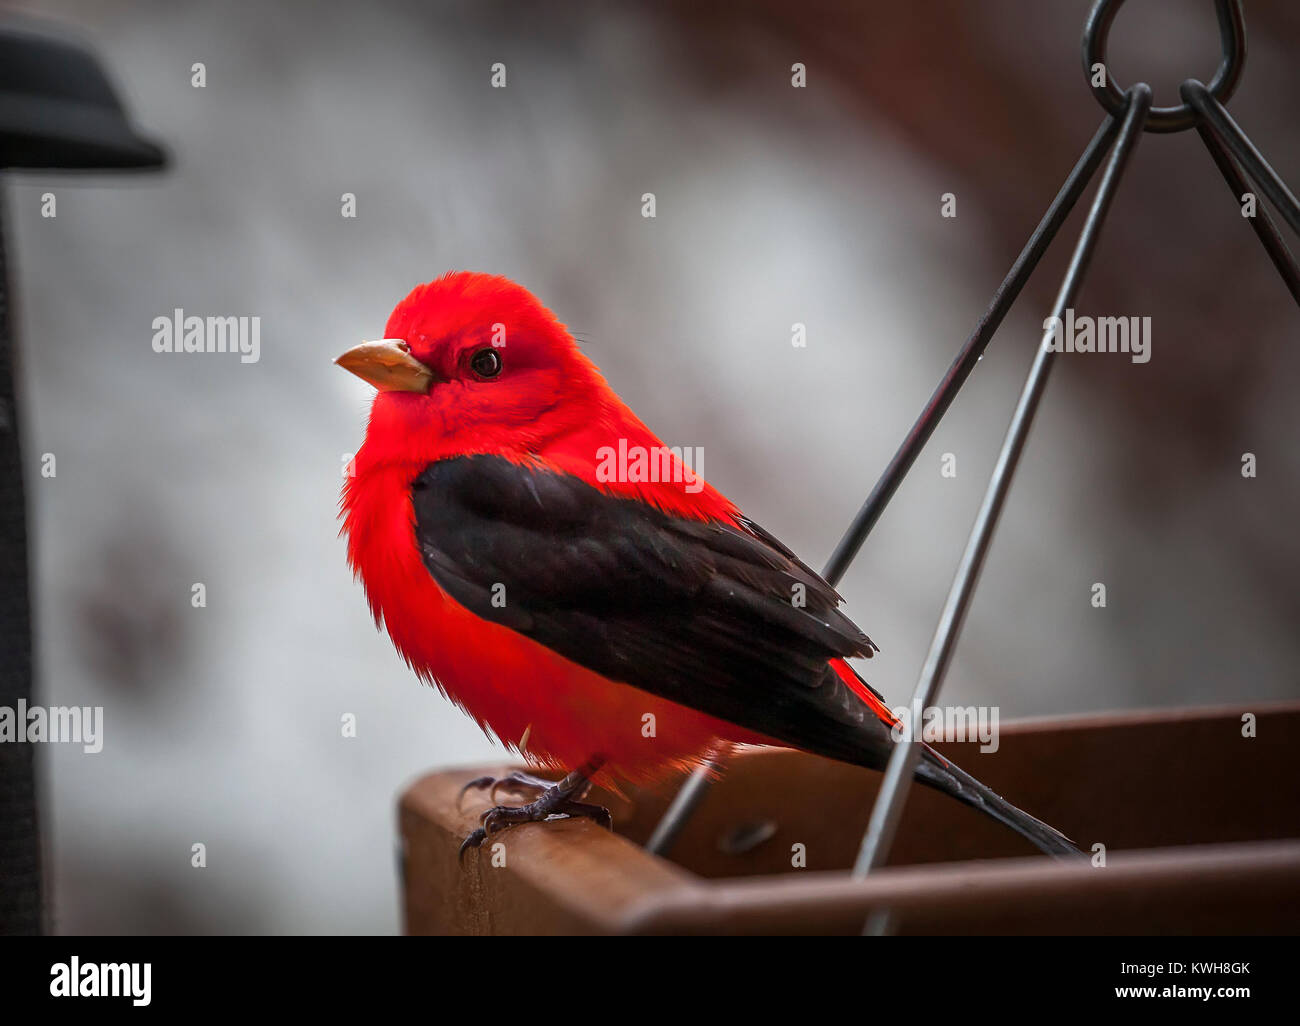 A lone adult male Scarlet Tanager, Piranga olivacea, is perched on a home platform feeder. This songbird is notable - Stock Image